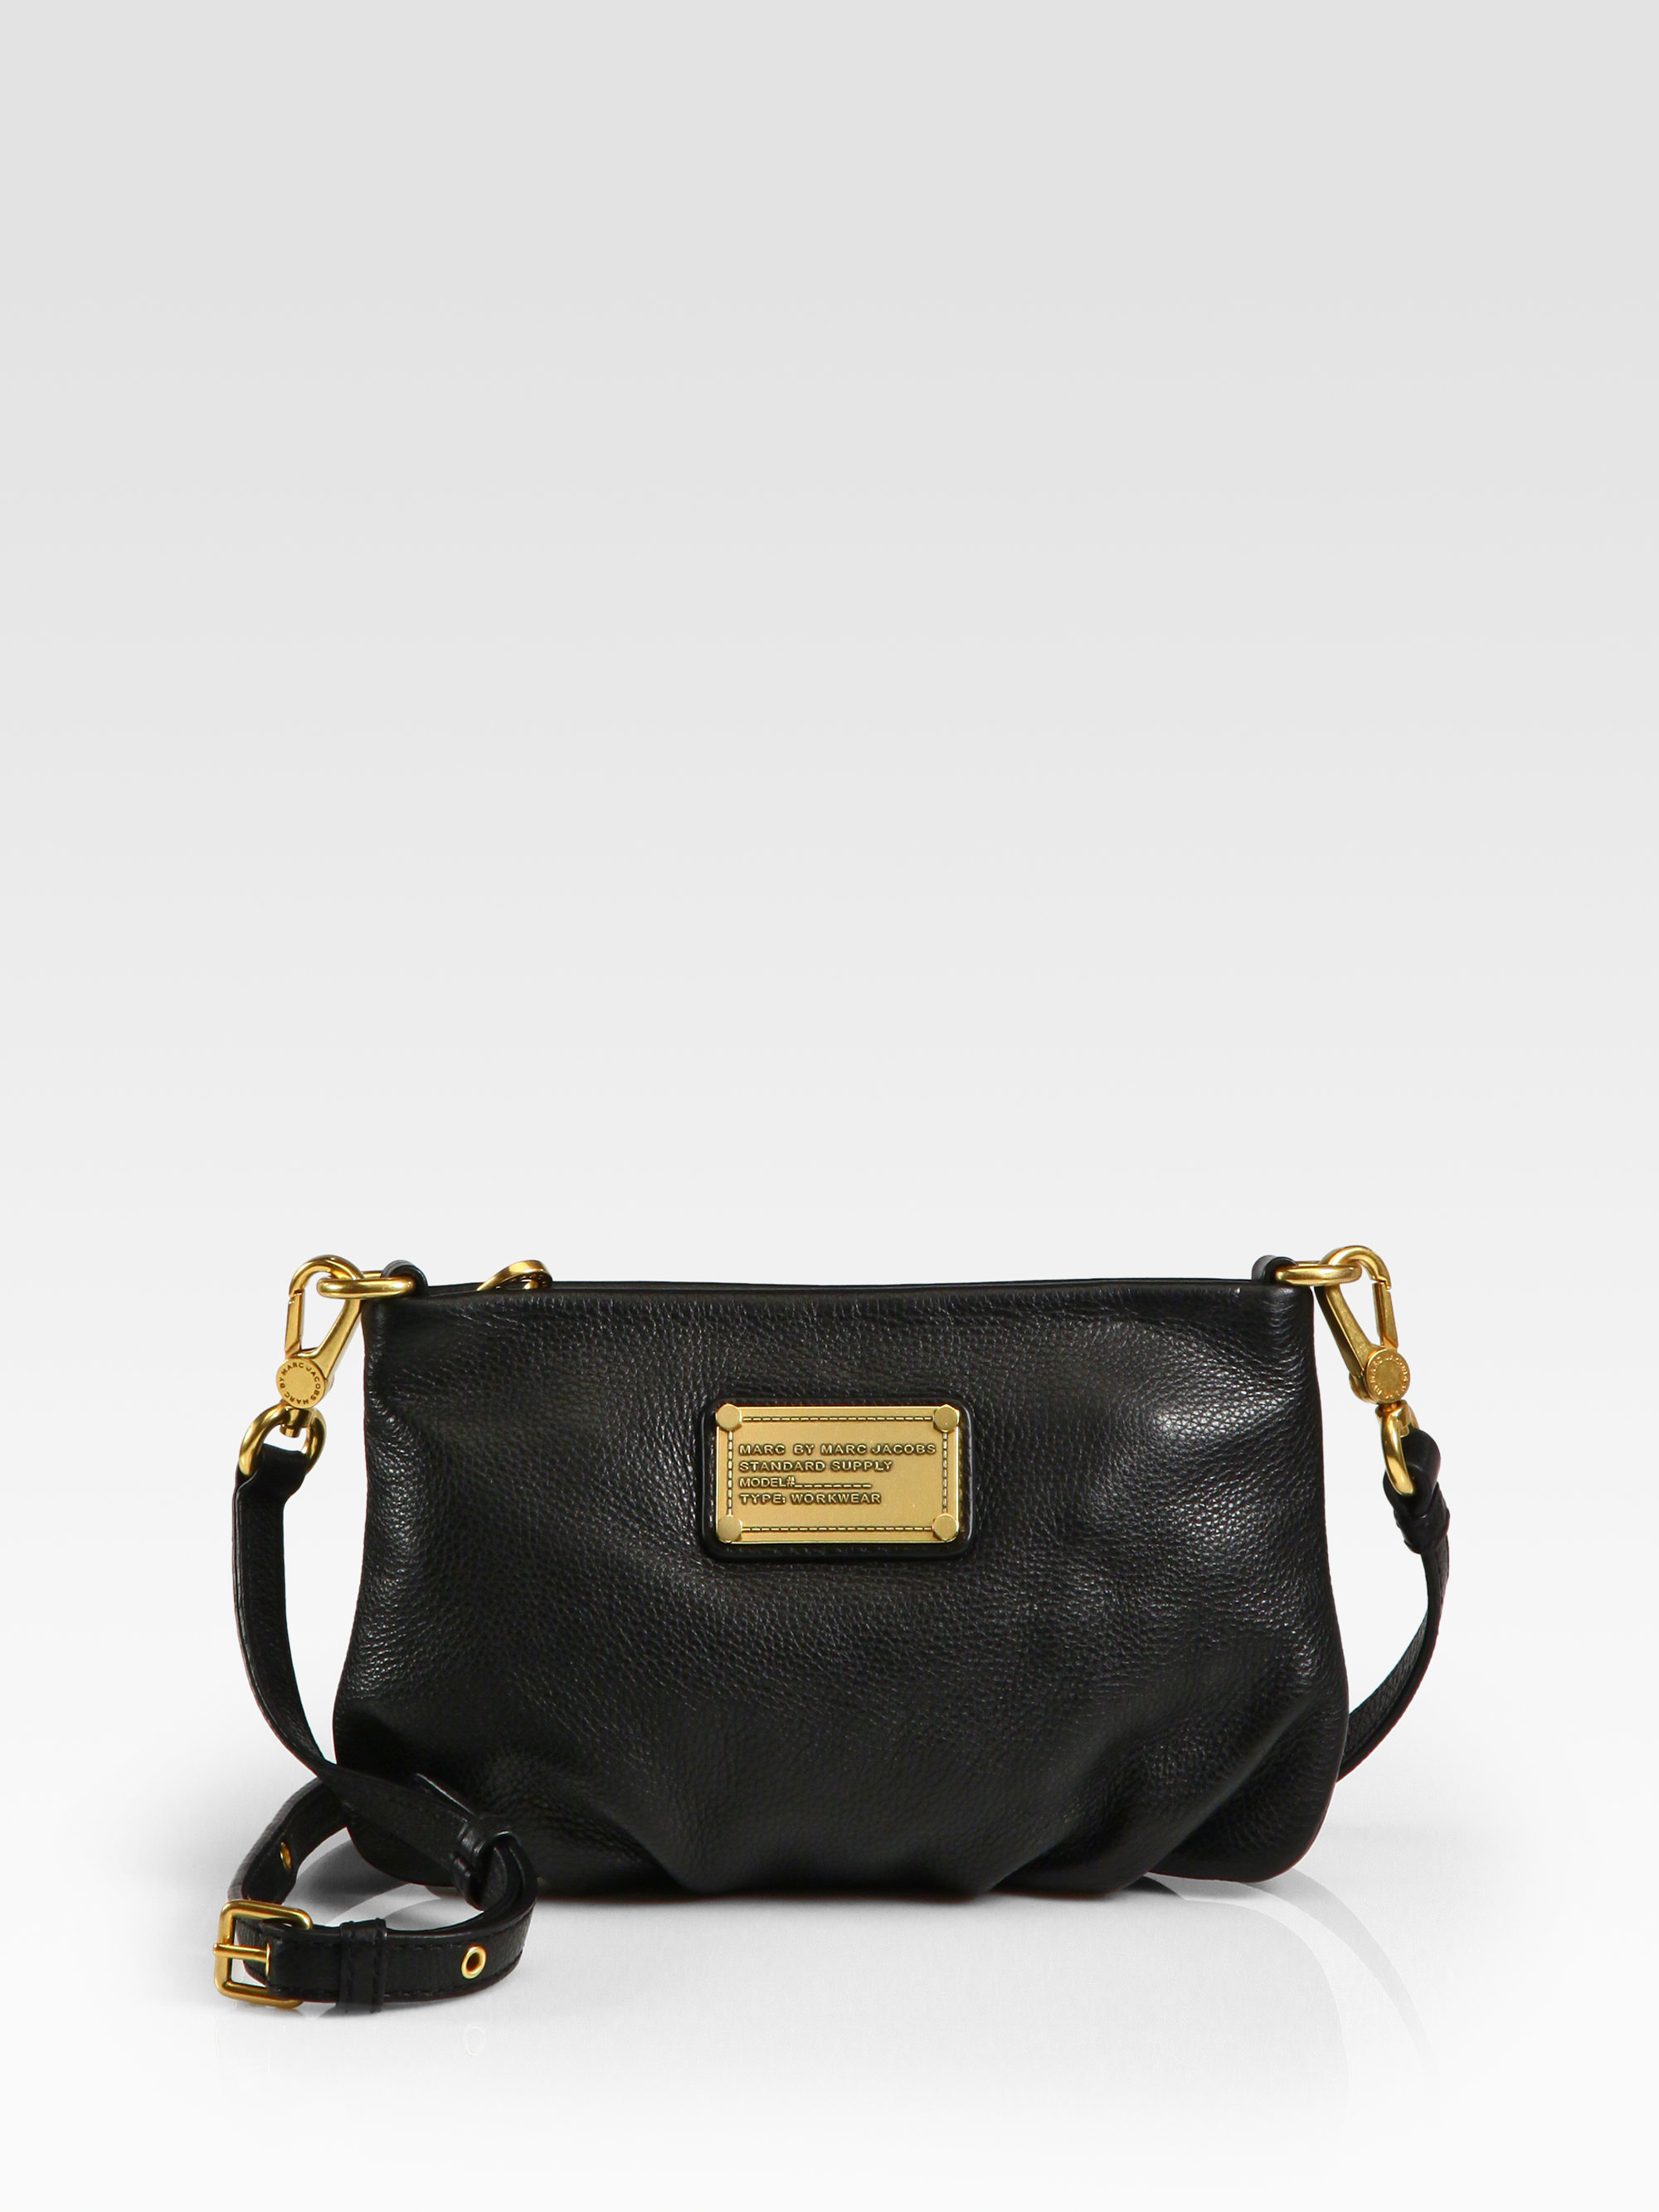 Velsete Marc By Marc Jacobs Classic Q Percy Leather Cross-Body Bag in CH-78